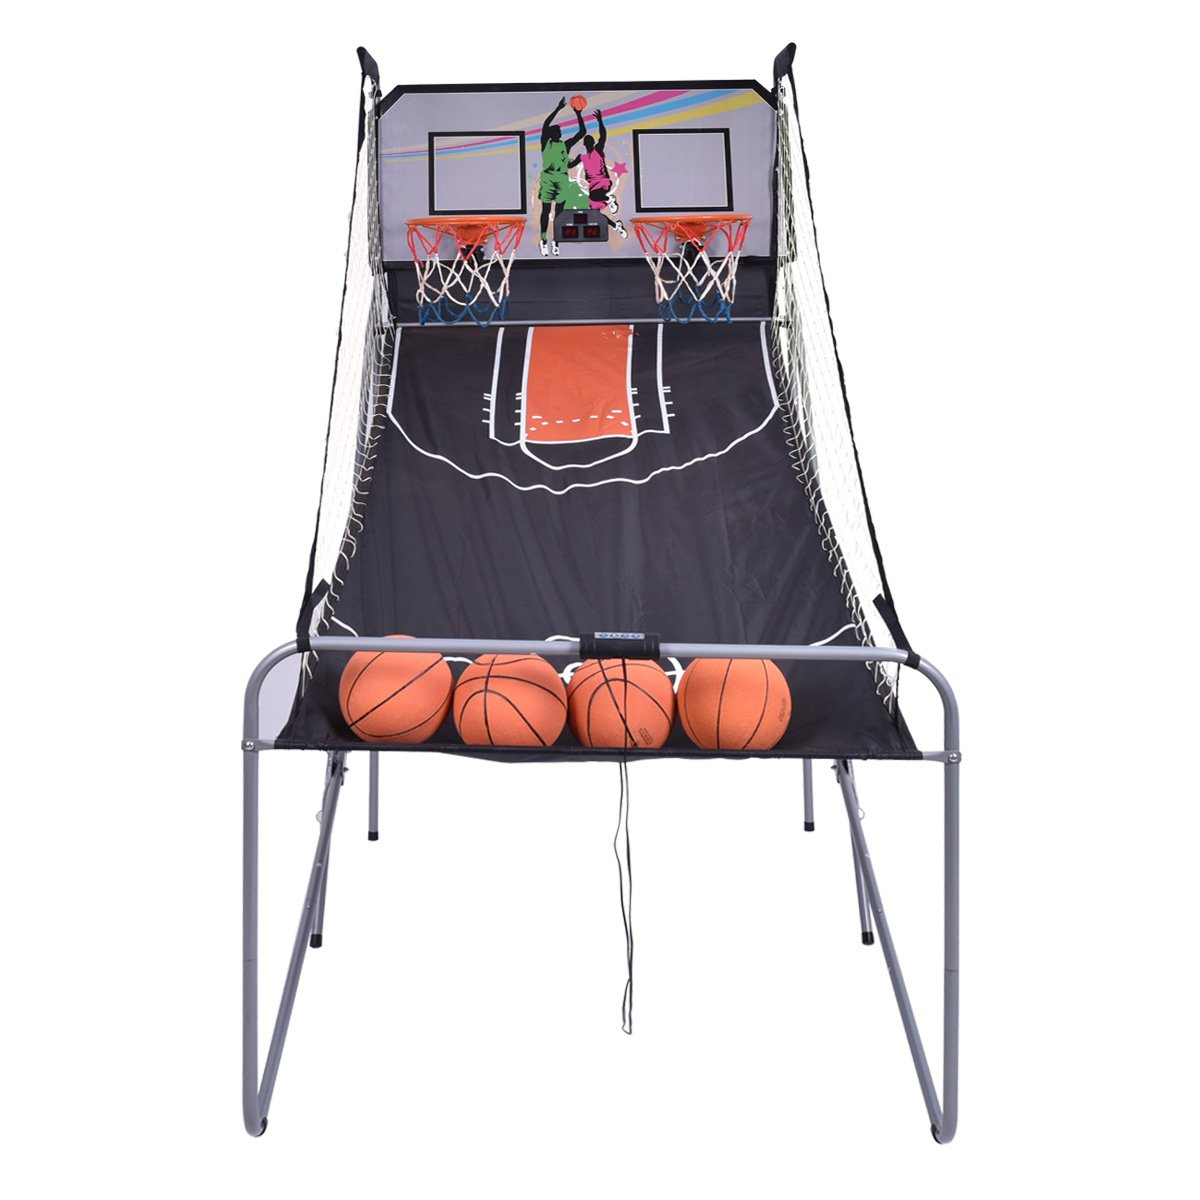 GYMAX Electronic Basketball Game, Double Shot Basketball Arcade Game 2 Players with 2 Rims 4 Balls by GYMAX